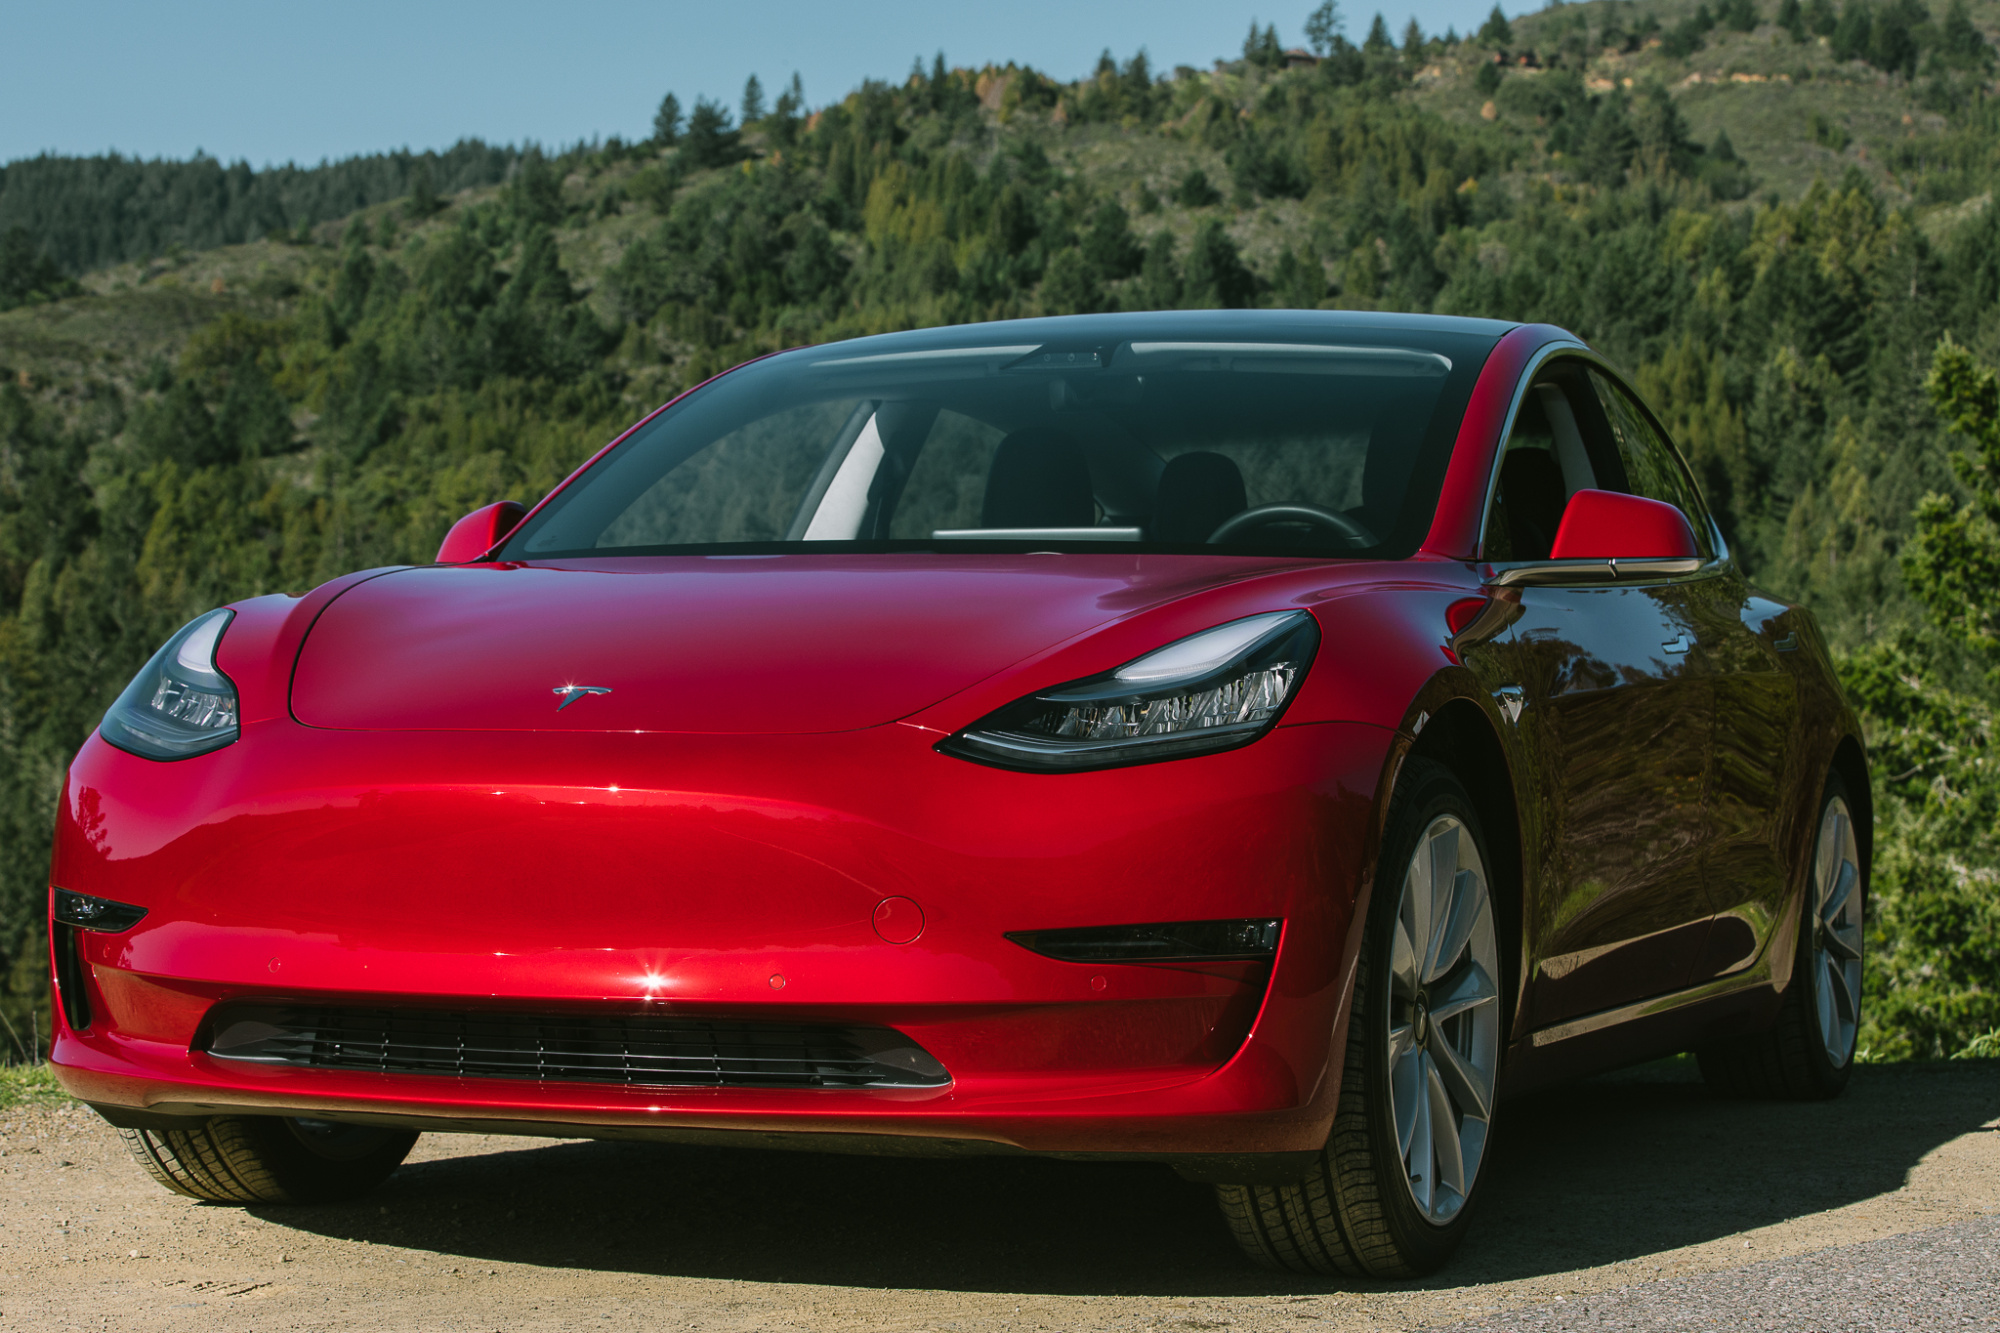 bloomberg.com - Tom Randall - Tesla Model 3 Critic Flips View, Sees Sedan Being Profitable